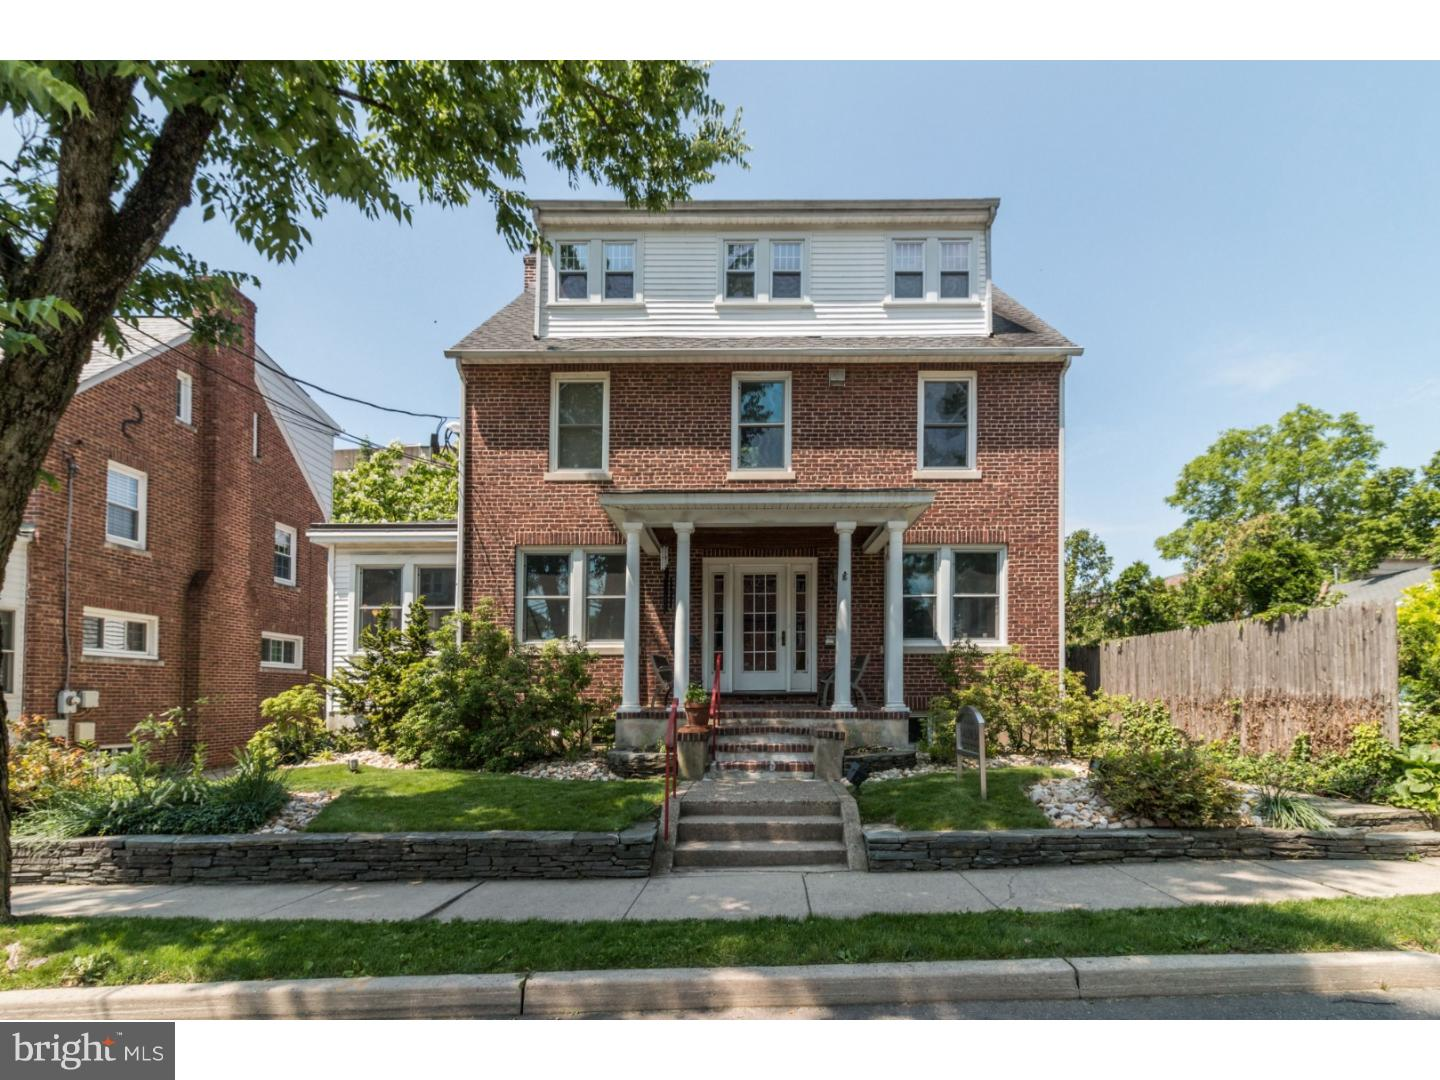 Property for Sale at Princeton, New Jersey 08542 United States